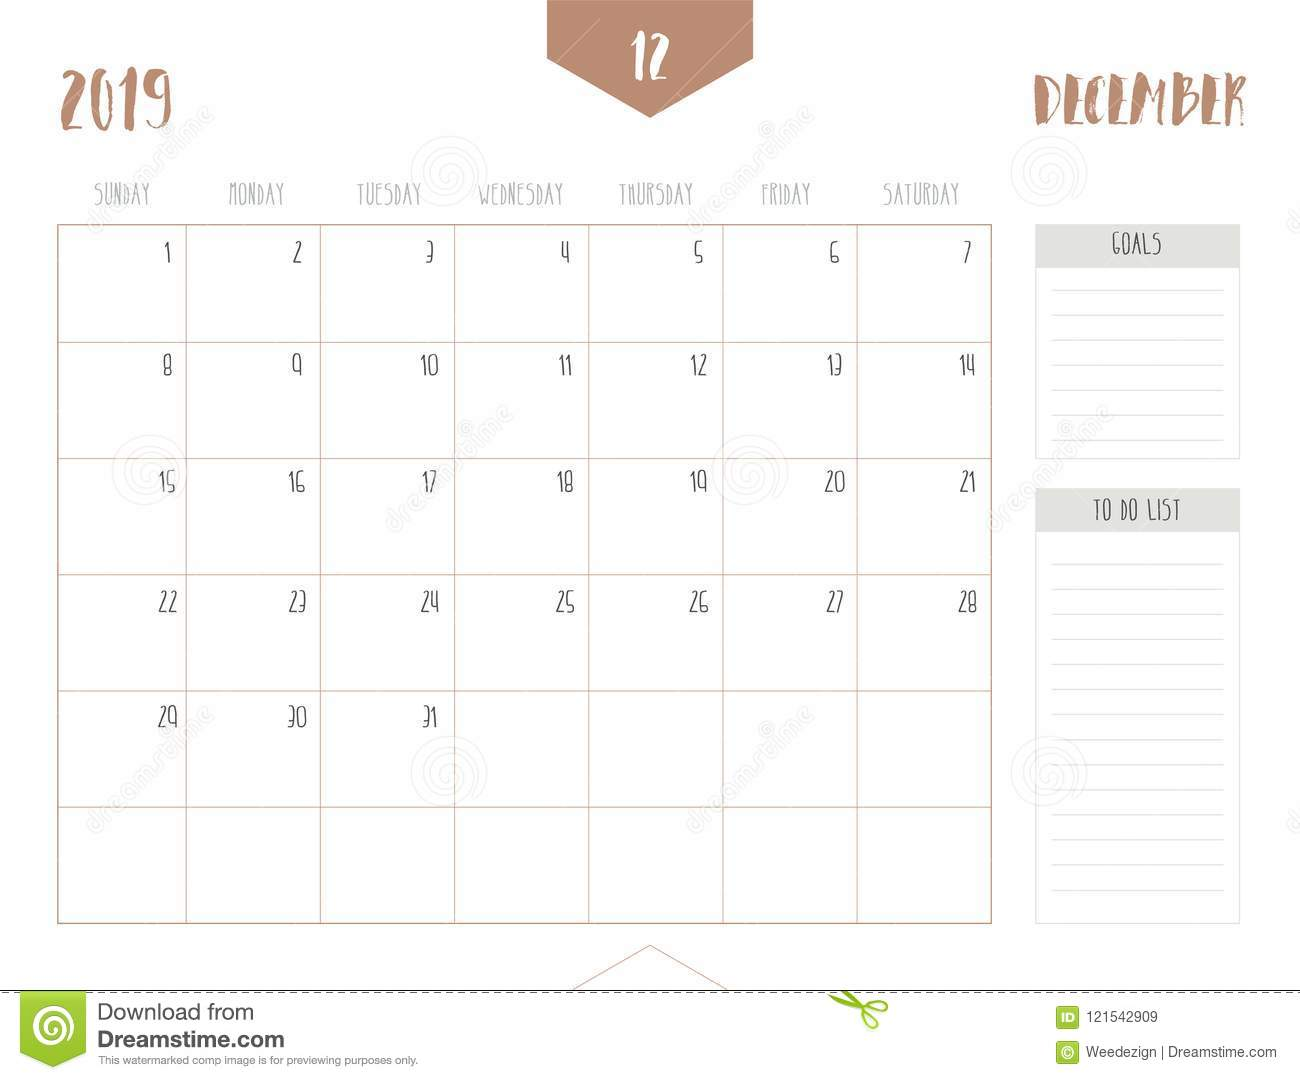 December Calendar 2019 With Goals Vector Of Calendar 2019 December In Simple Clean Table Style Stock